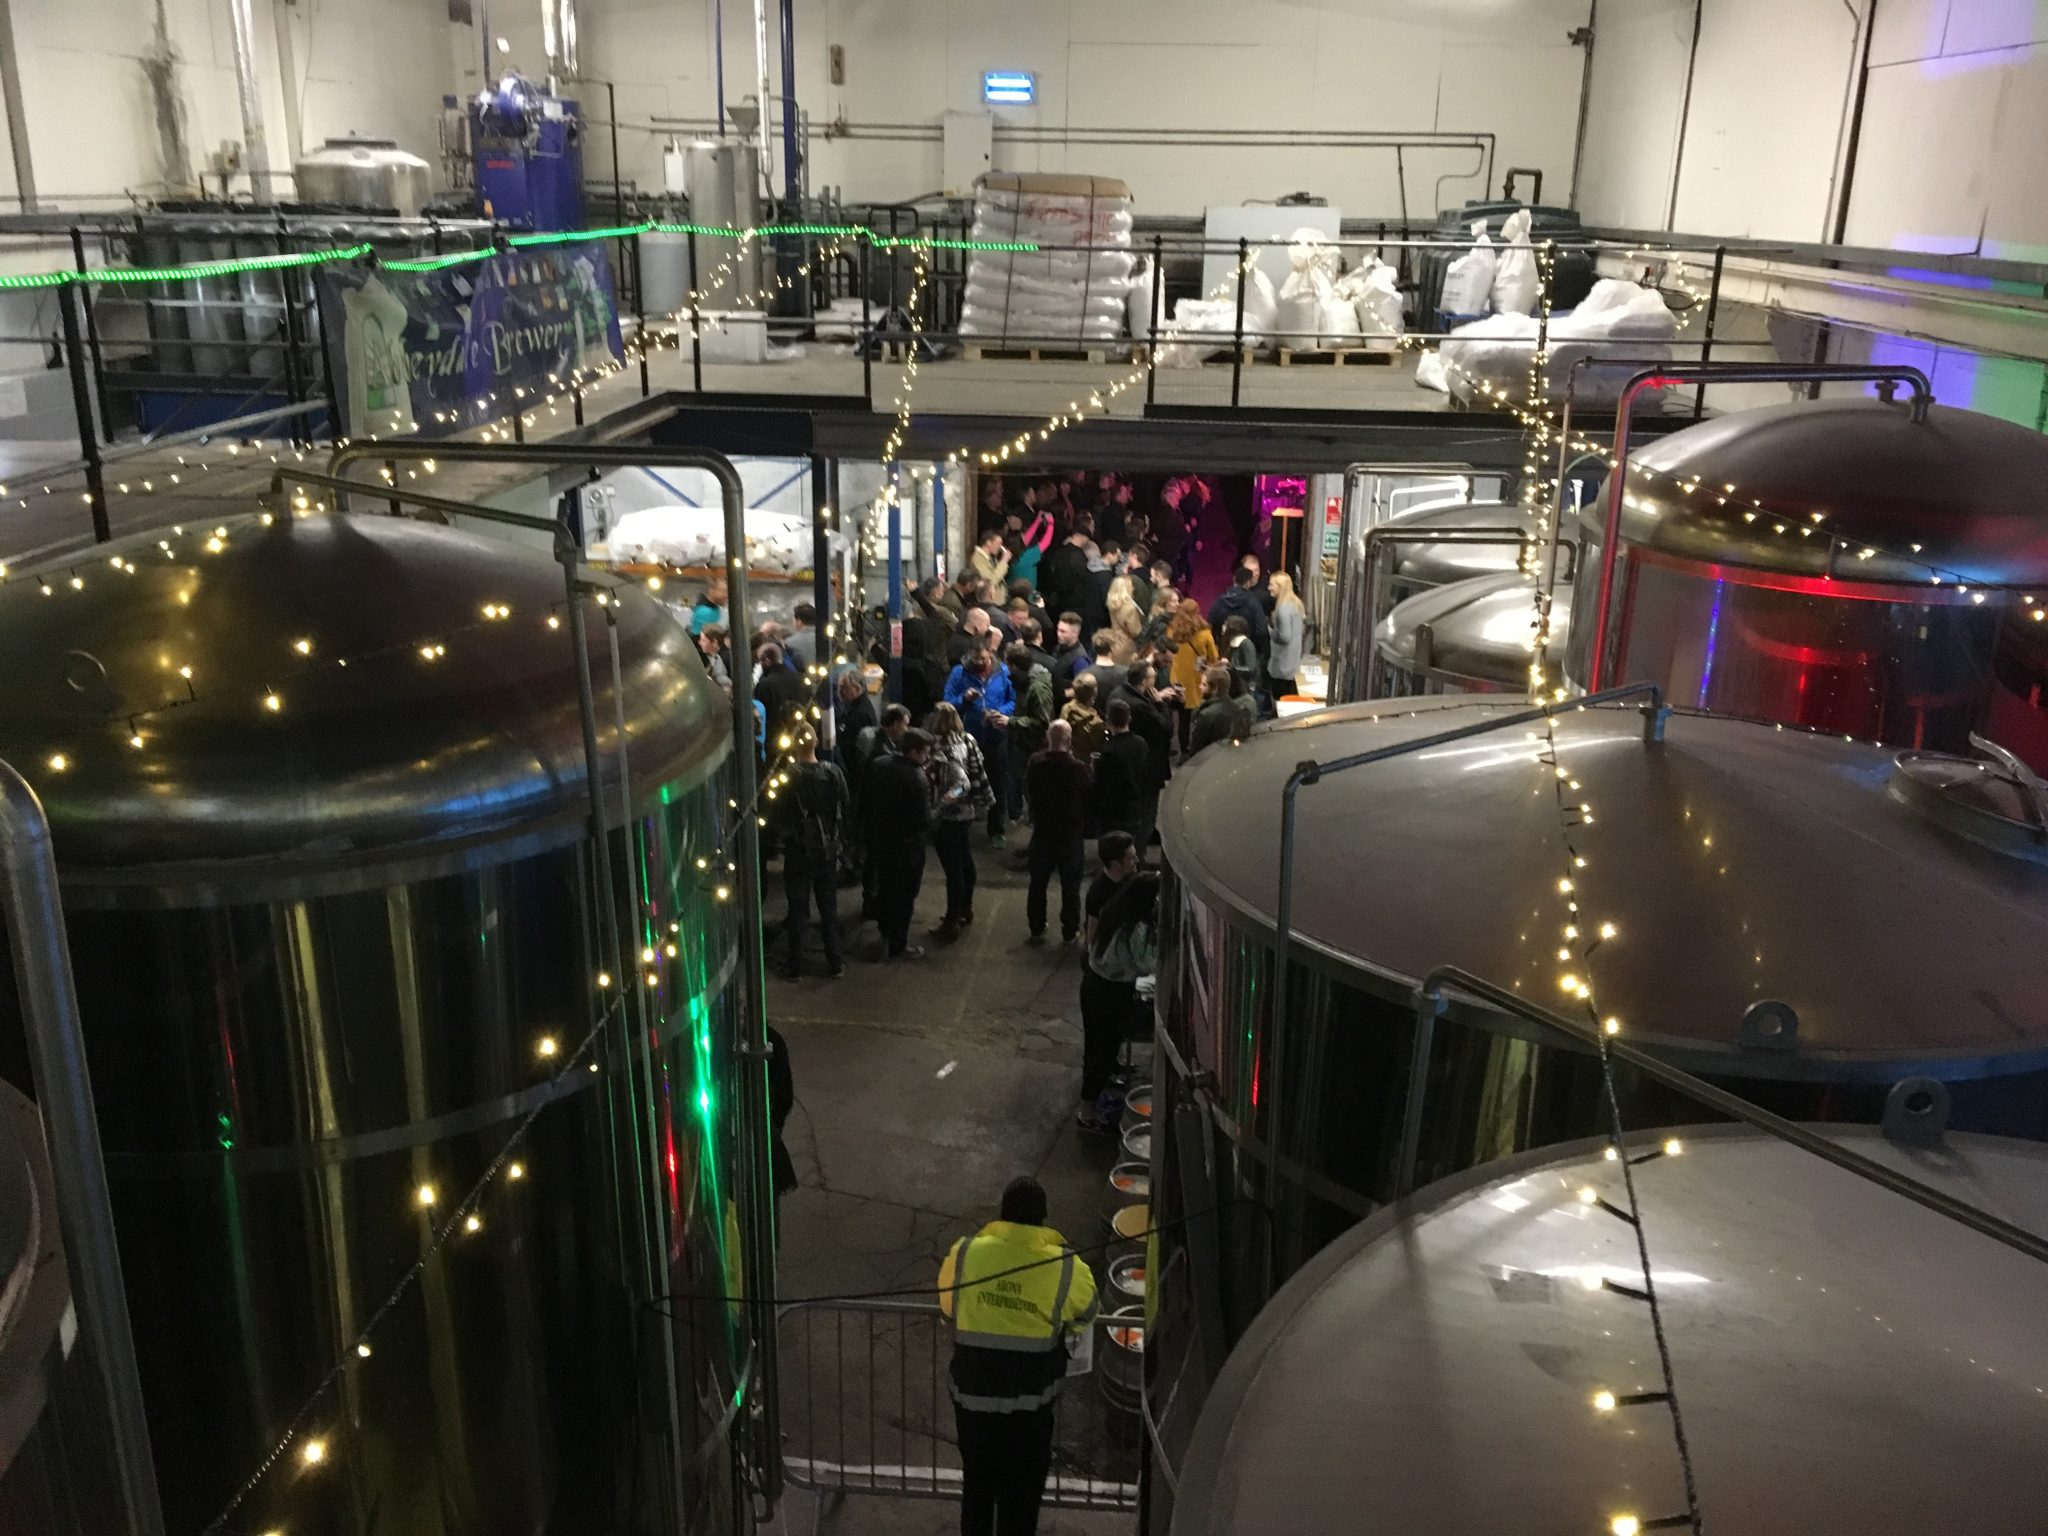 Piss-Up in a Brewery